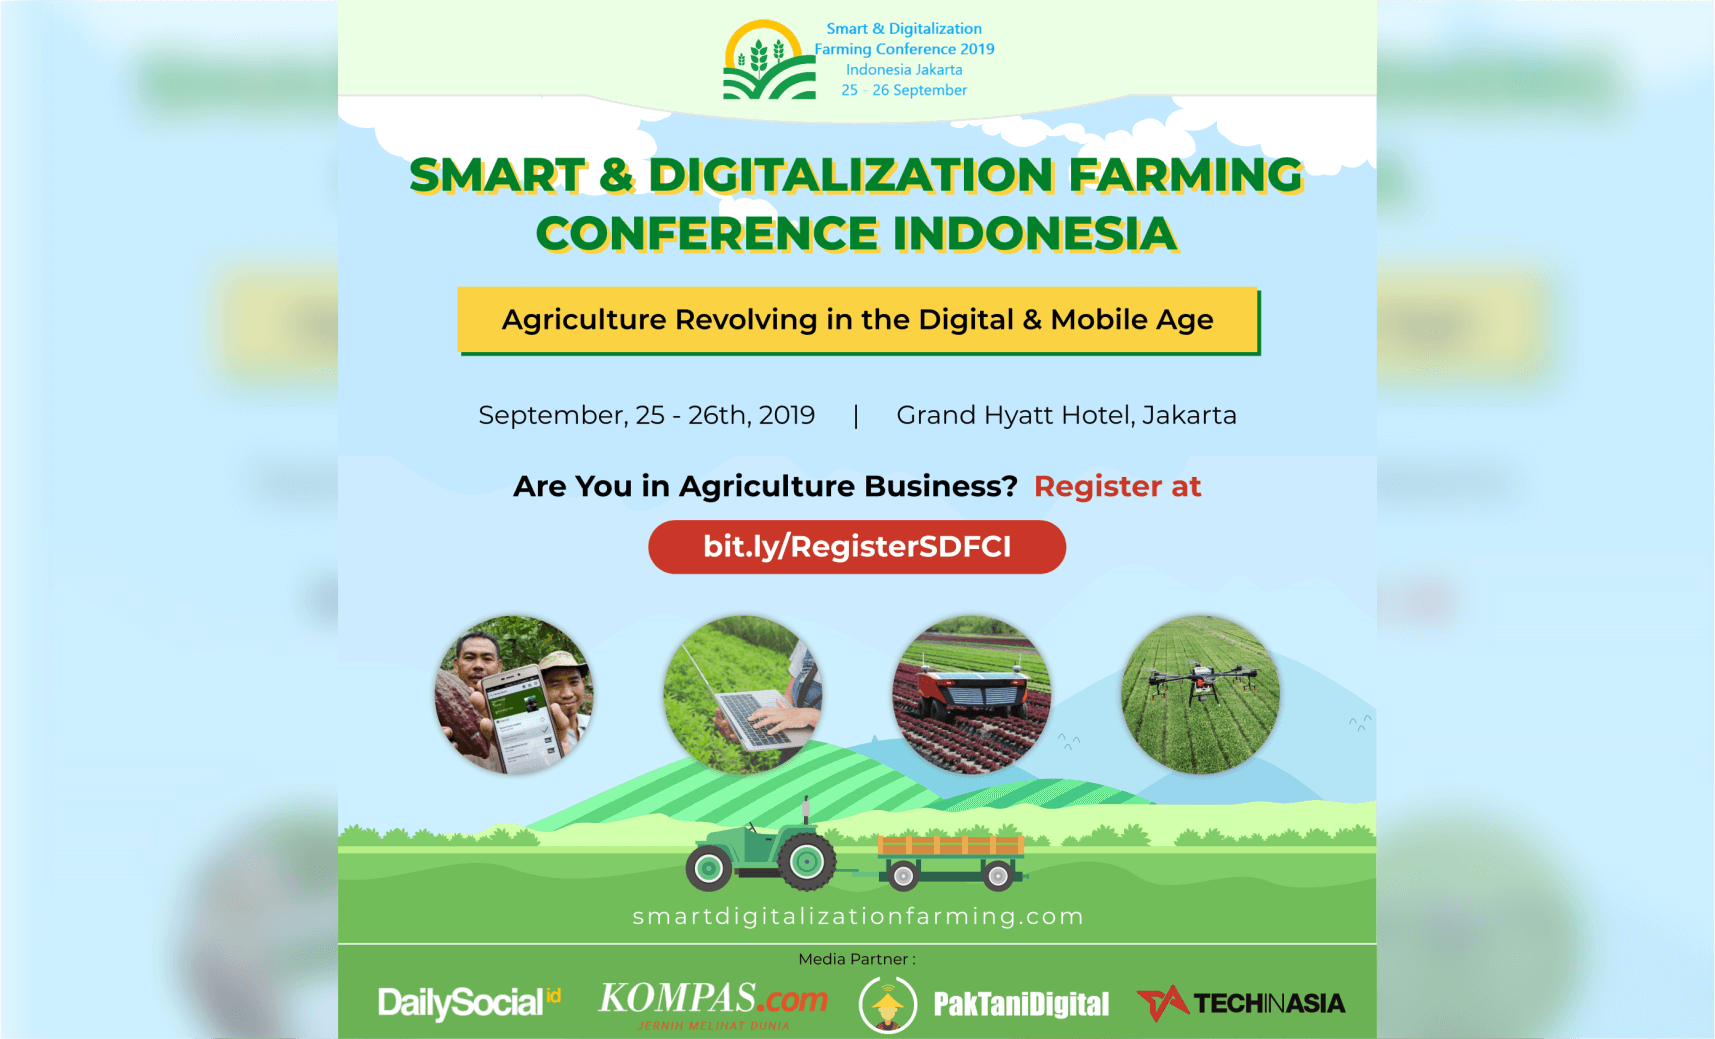 SMART & DIGITALIZATION FARMING CONFERENCE INDONESIA